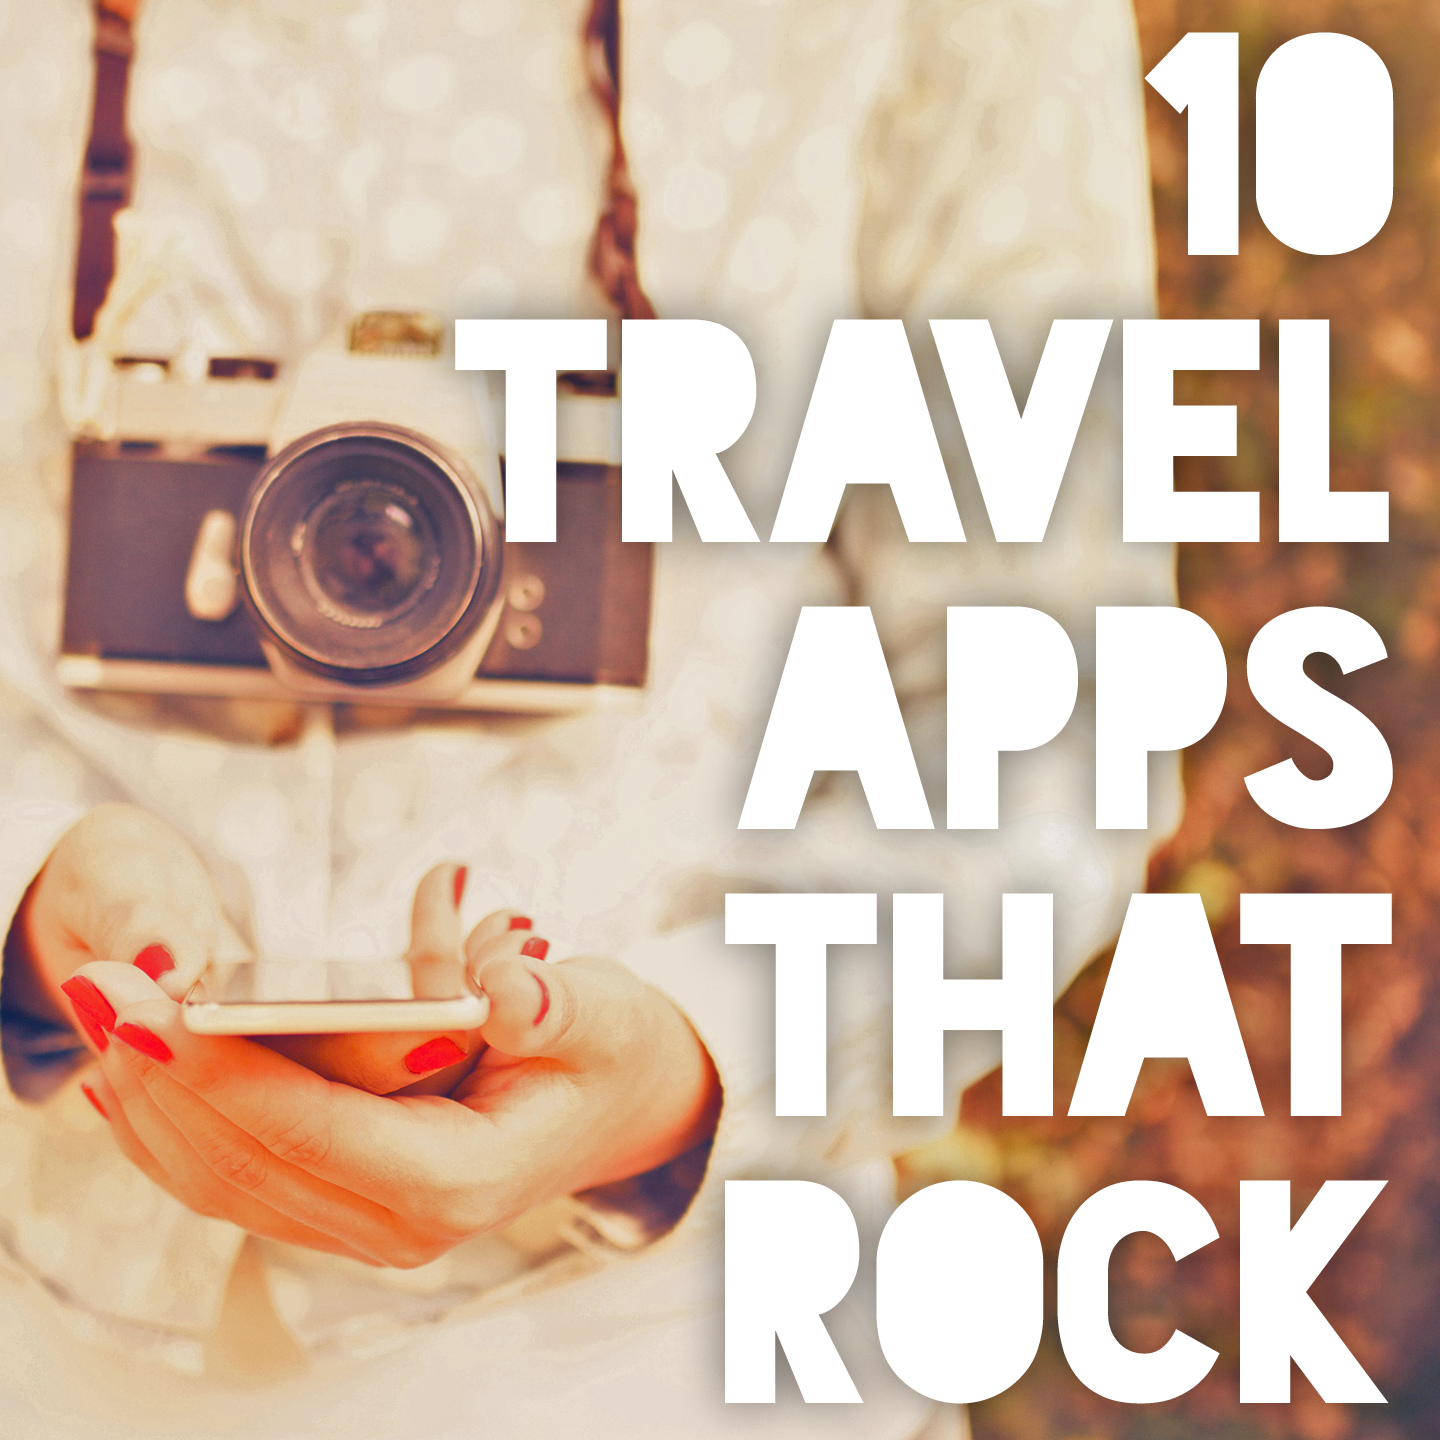 10 Travel Apps that Rock